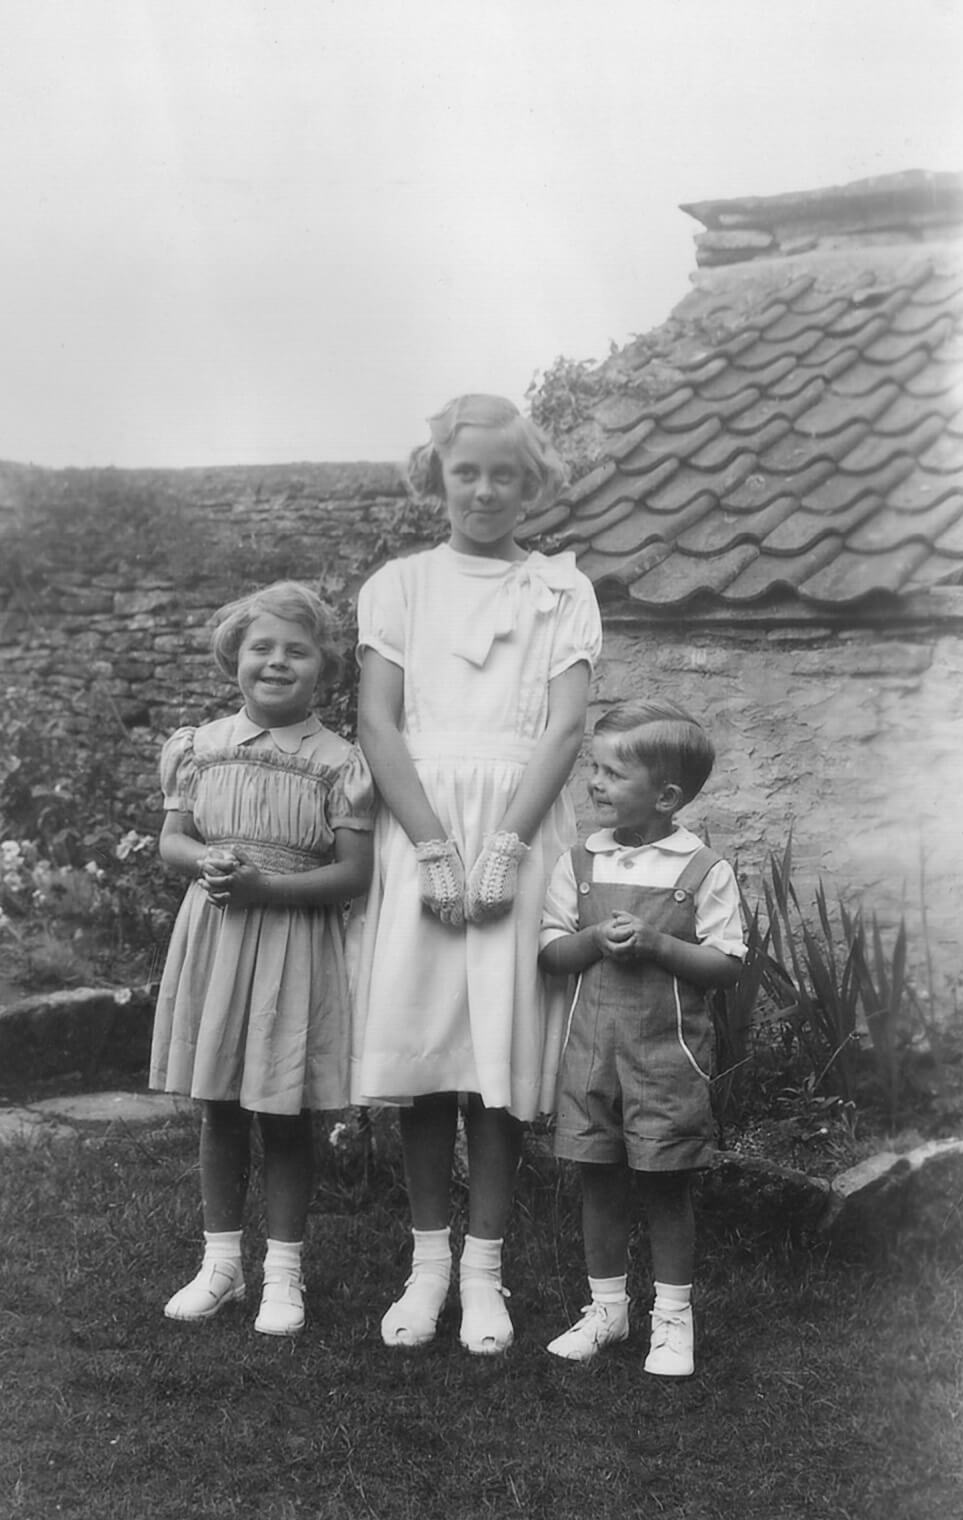 three children in old fashioned clothes, standing together in a garden, the middle child is a tall girl in a white dress with blonde hair.